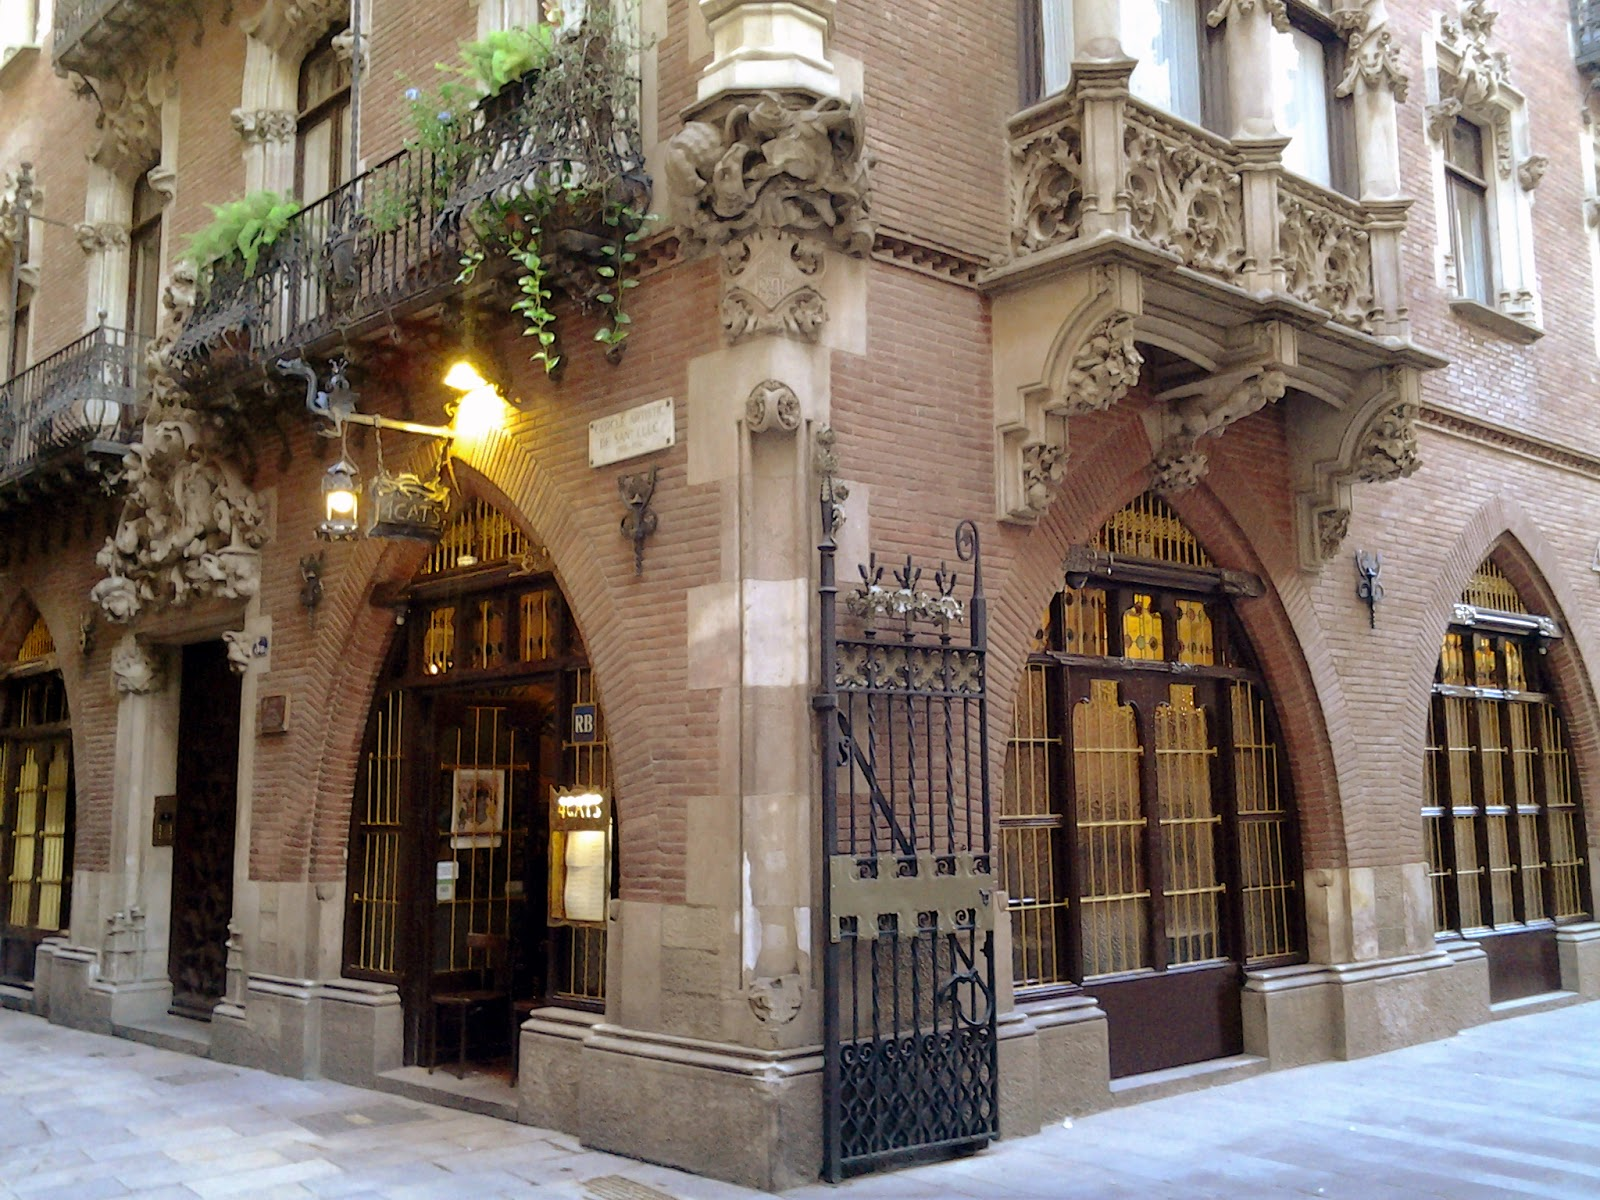 Privado: Gaudí y El Modernismo en el casco antiguo de Barcelona – Tour a pie